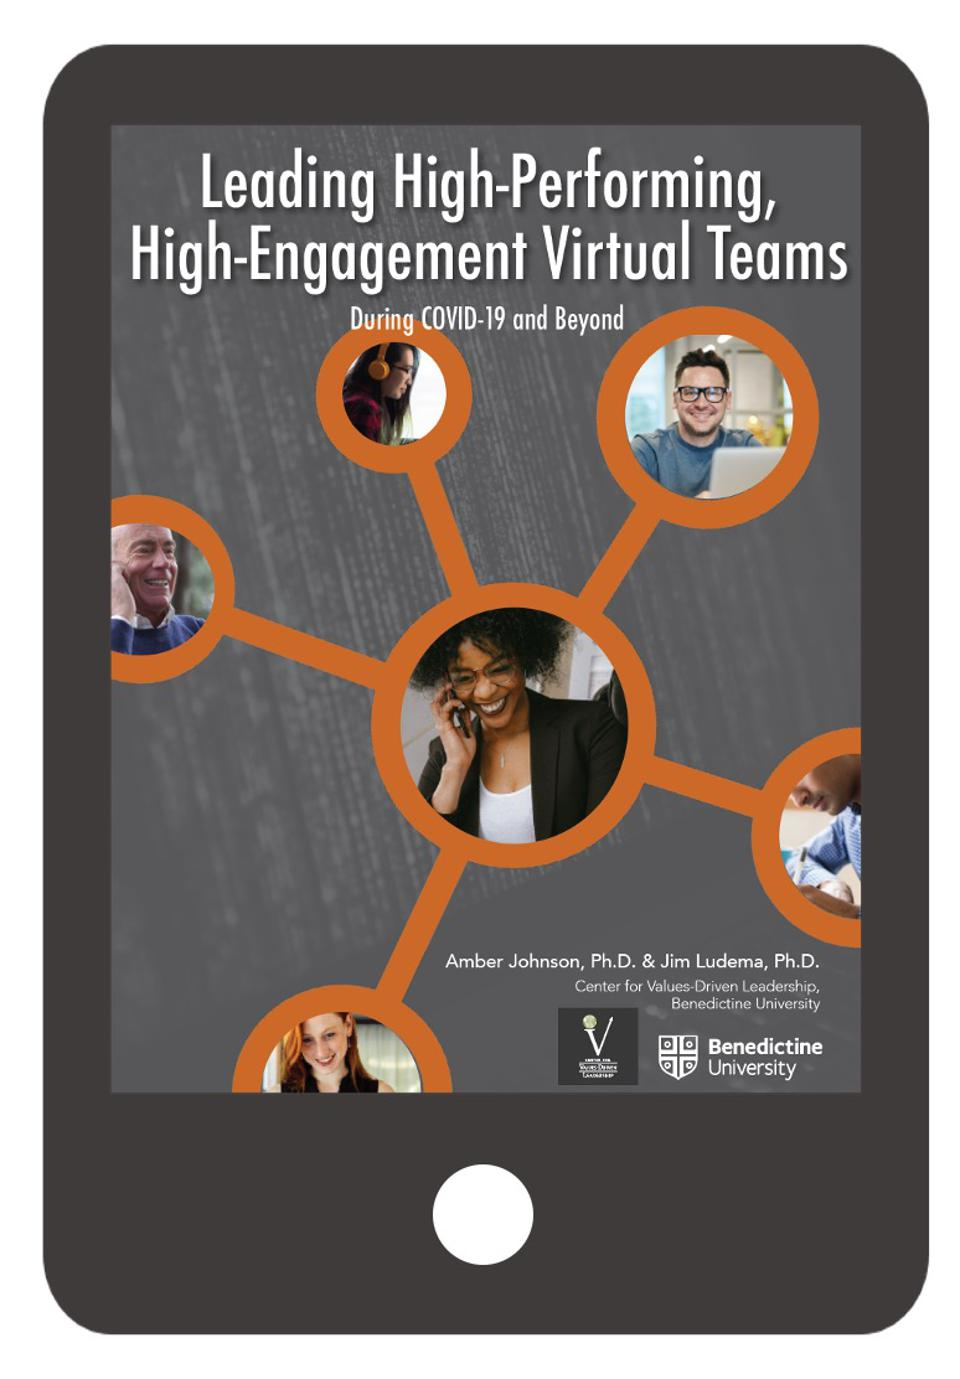 Ebook for virtual team leadership